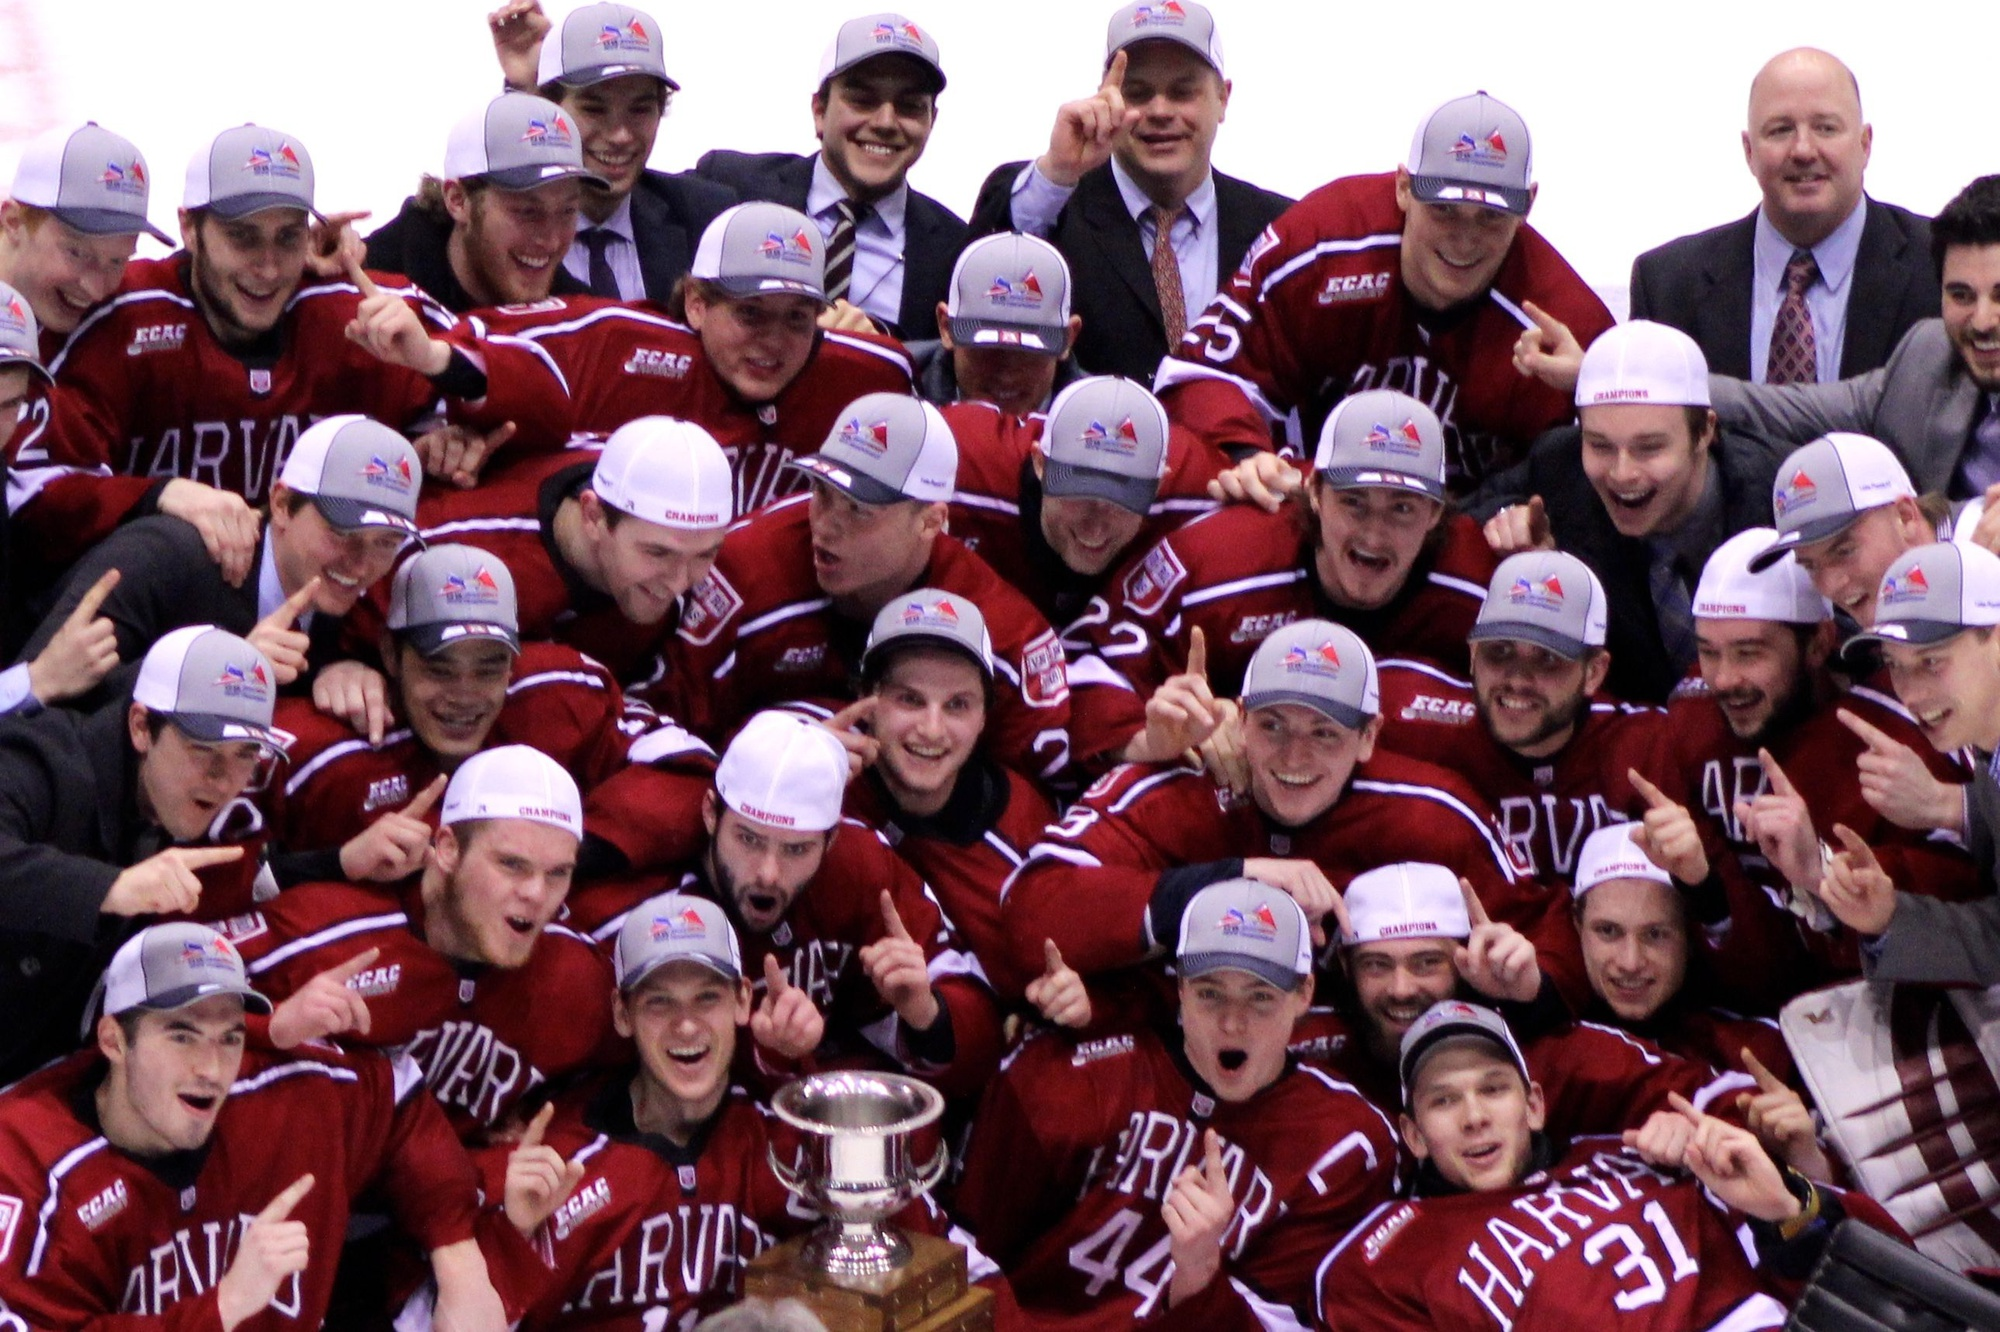 The Crimson took home the Whitelaw Cup for the first time since 2006.